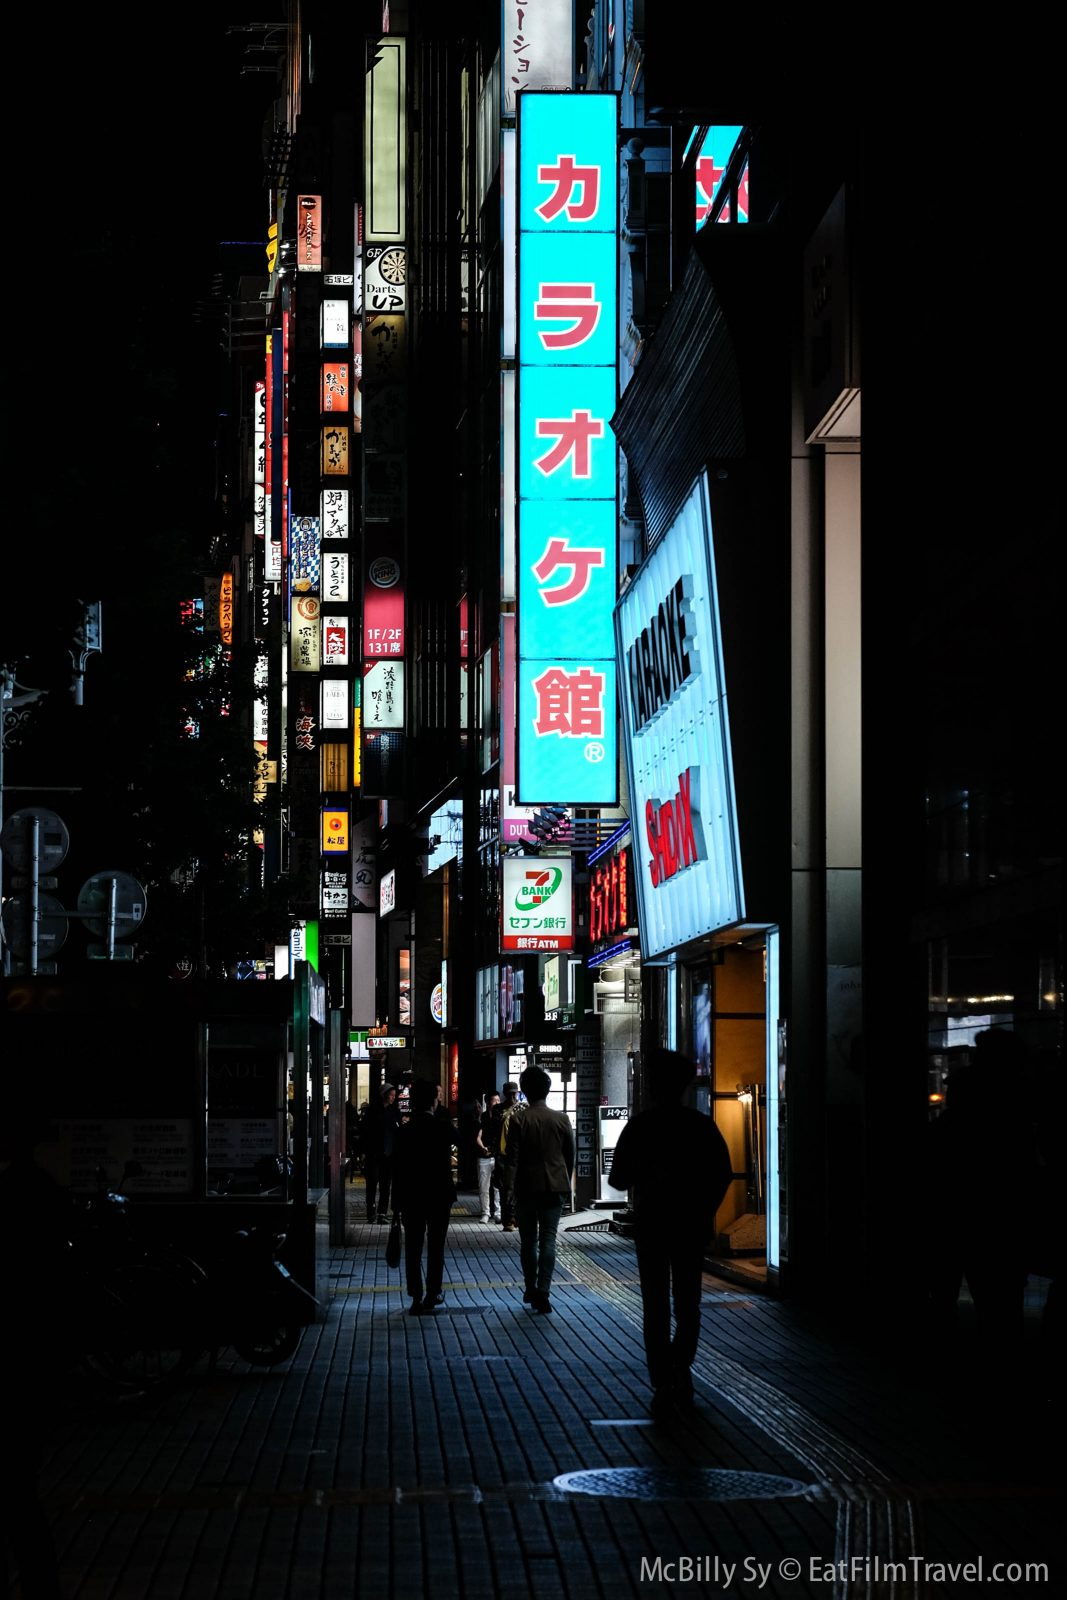 Perfect to walk around the Shinjuku area for some night photography